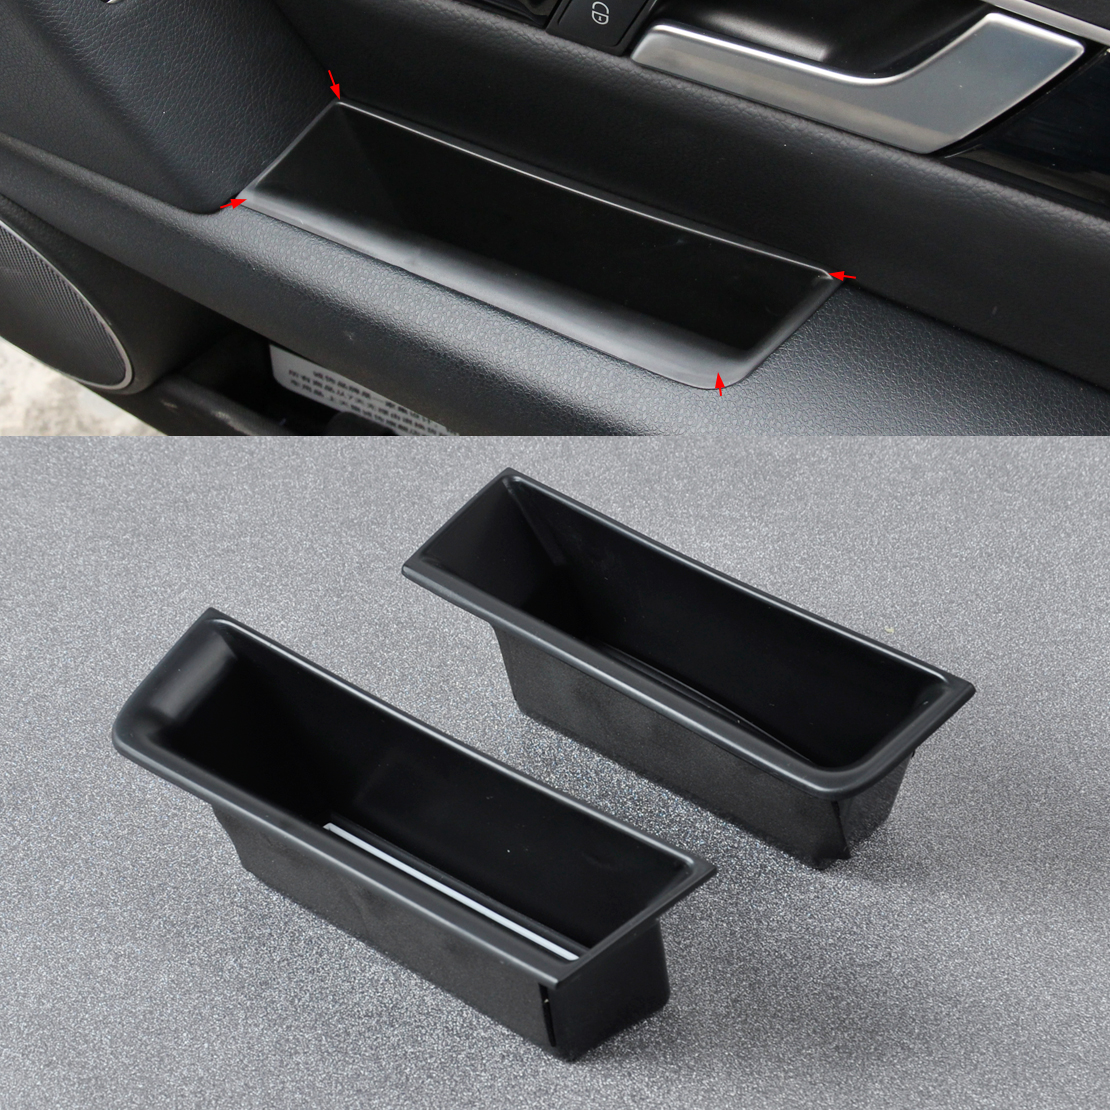 DWCX 2Pcs Car Rear Door Armrest Storage Box for <font><b>Mercedes</b></font>-Benz GLK Class GLK300 GLK350 GLK25 X204 2009 2010 2011 2012 2013 2014 image